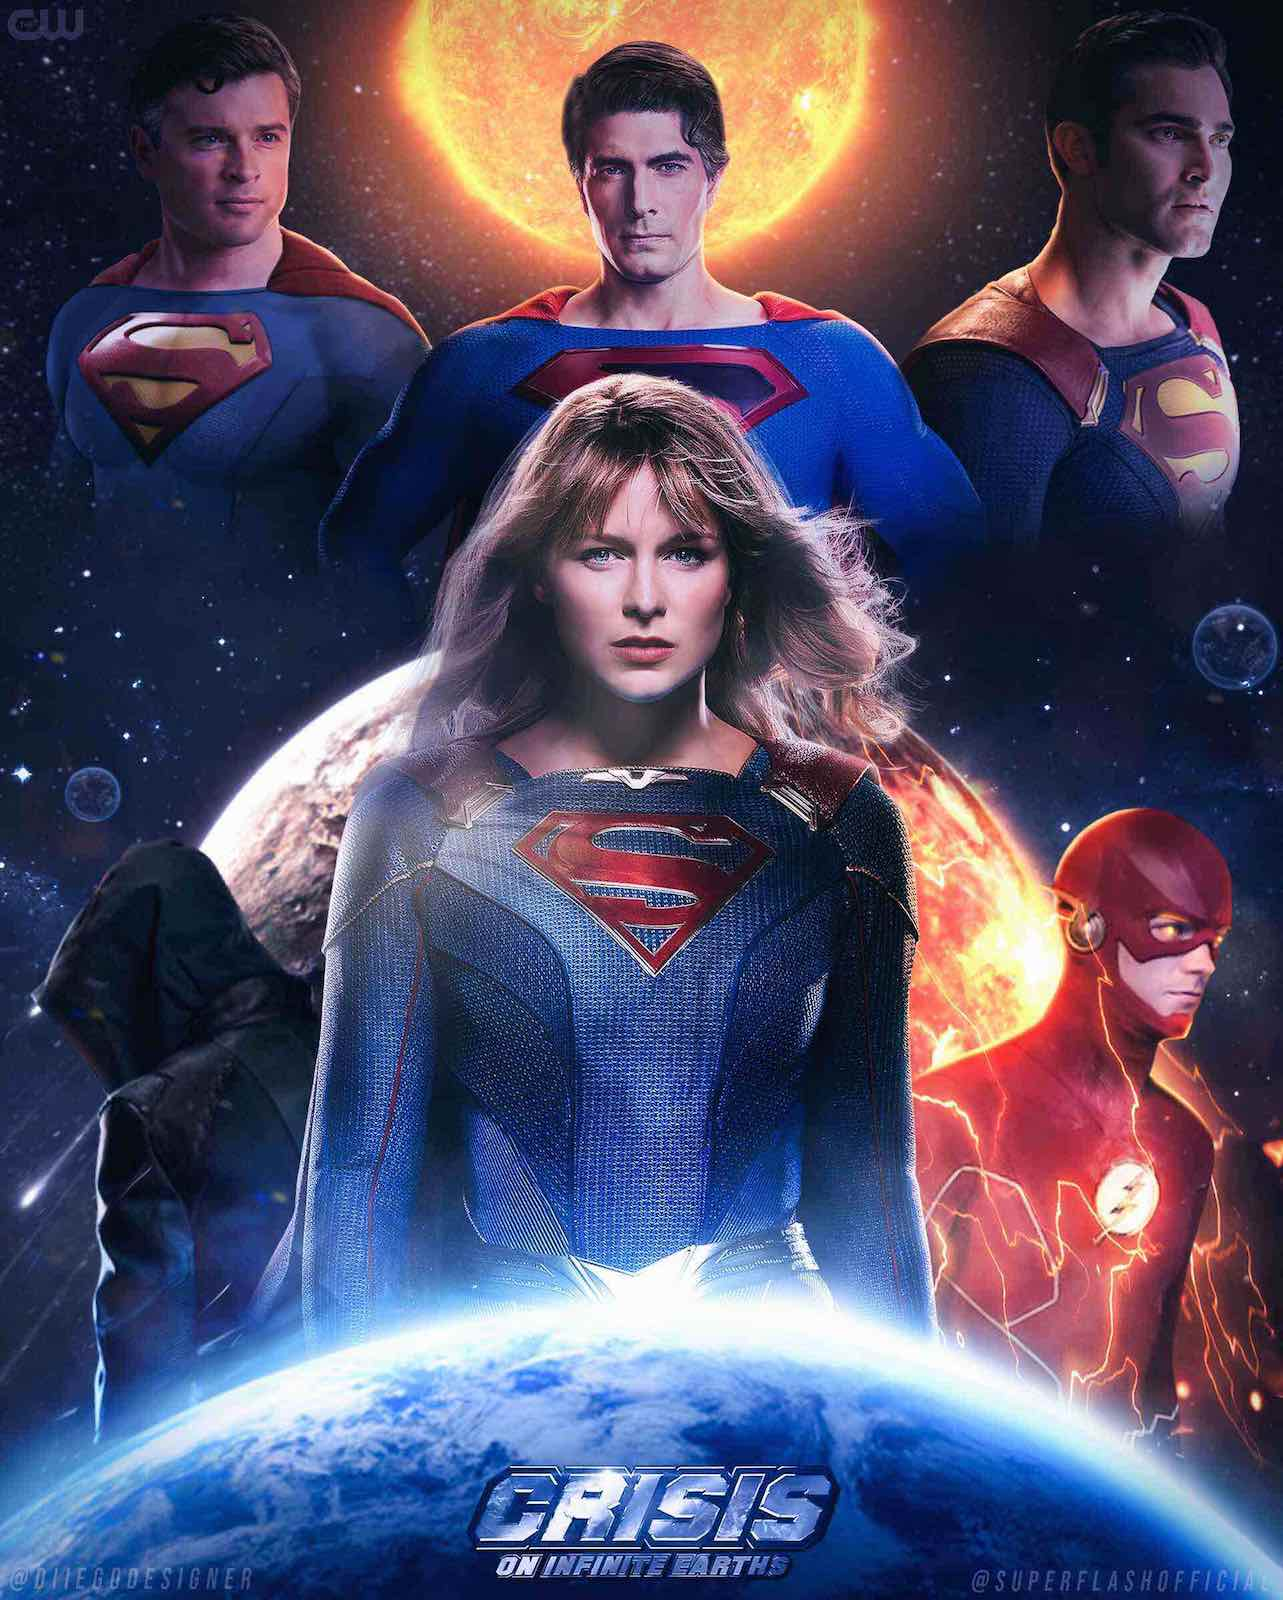 'Crisis on Infinite Earths' was the apex of The CW's Arrowverse. Discover why the crossover was so successful.